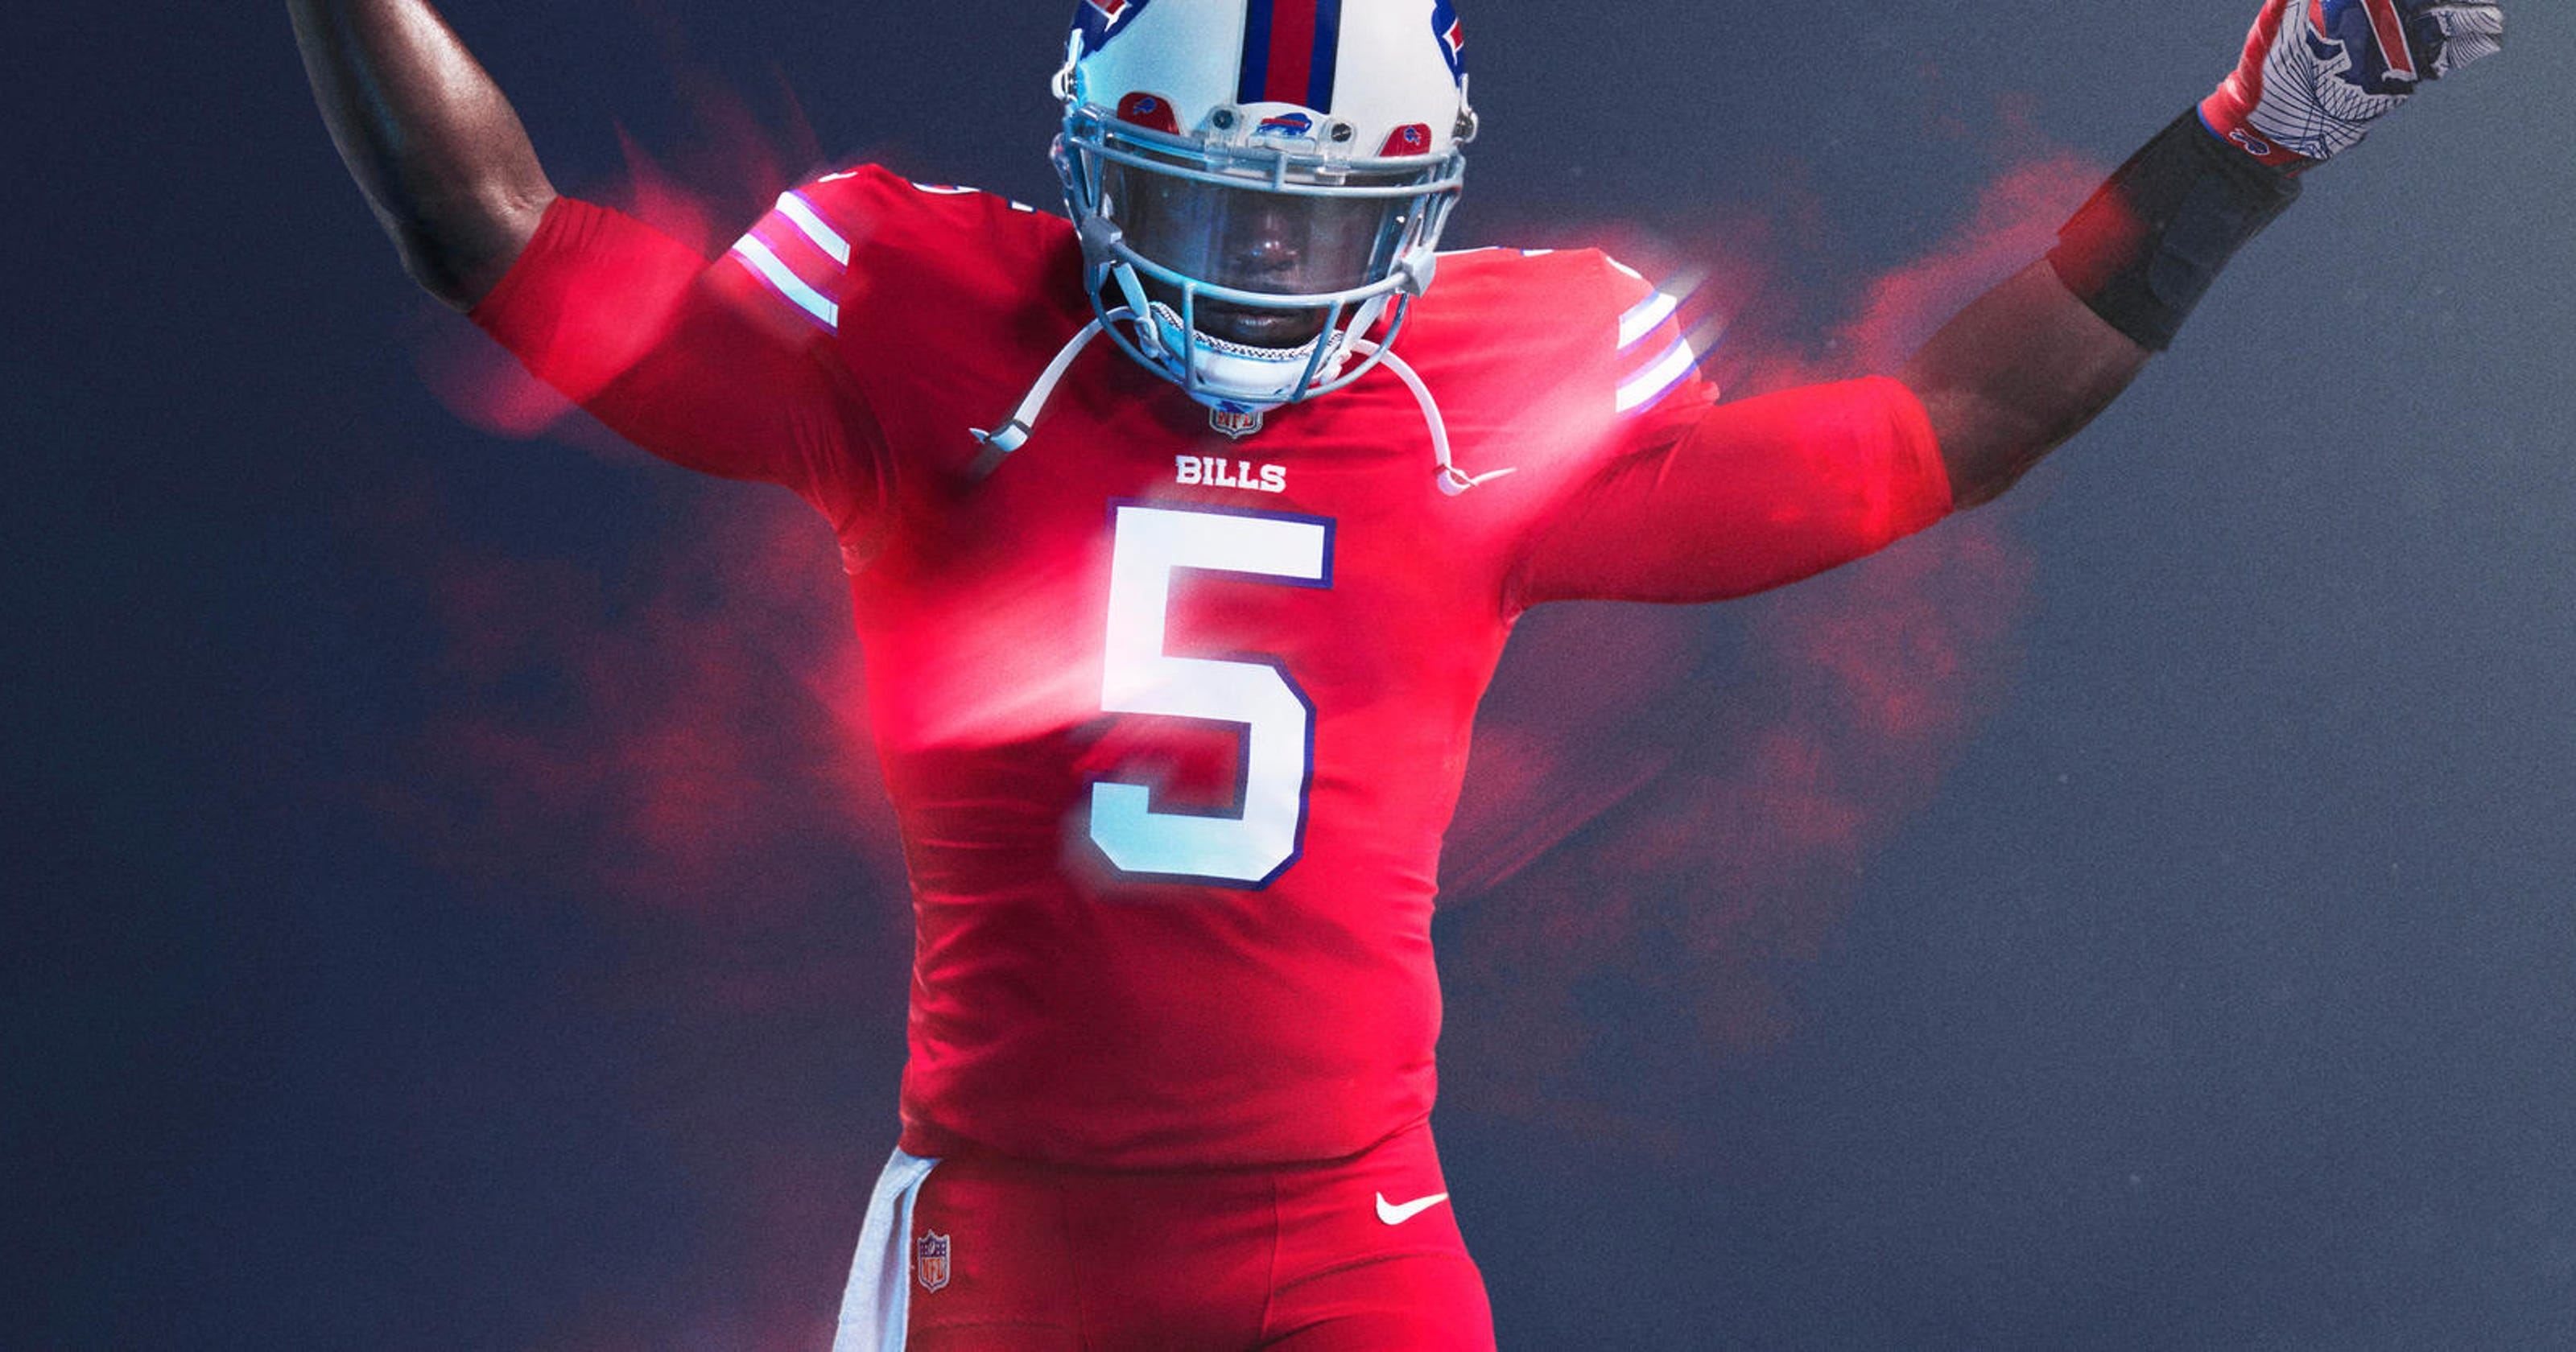 891b2292b NFL takes Color Rush uniforms to next level